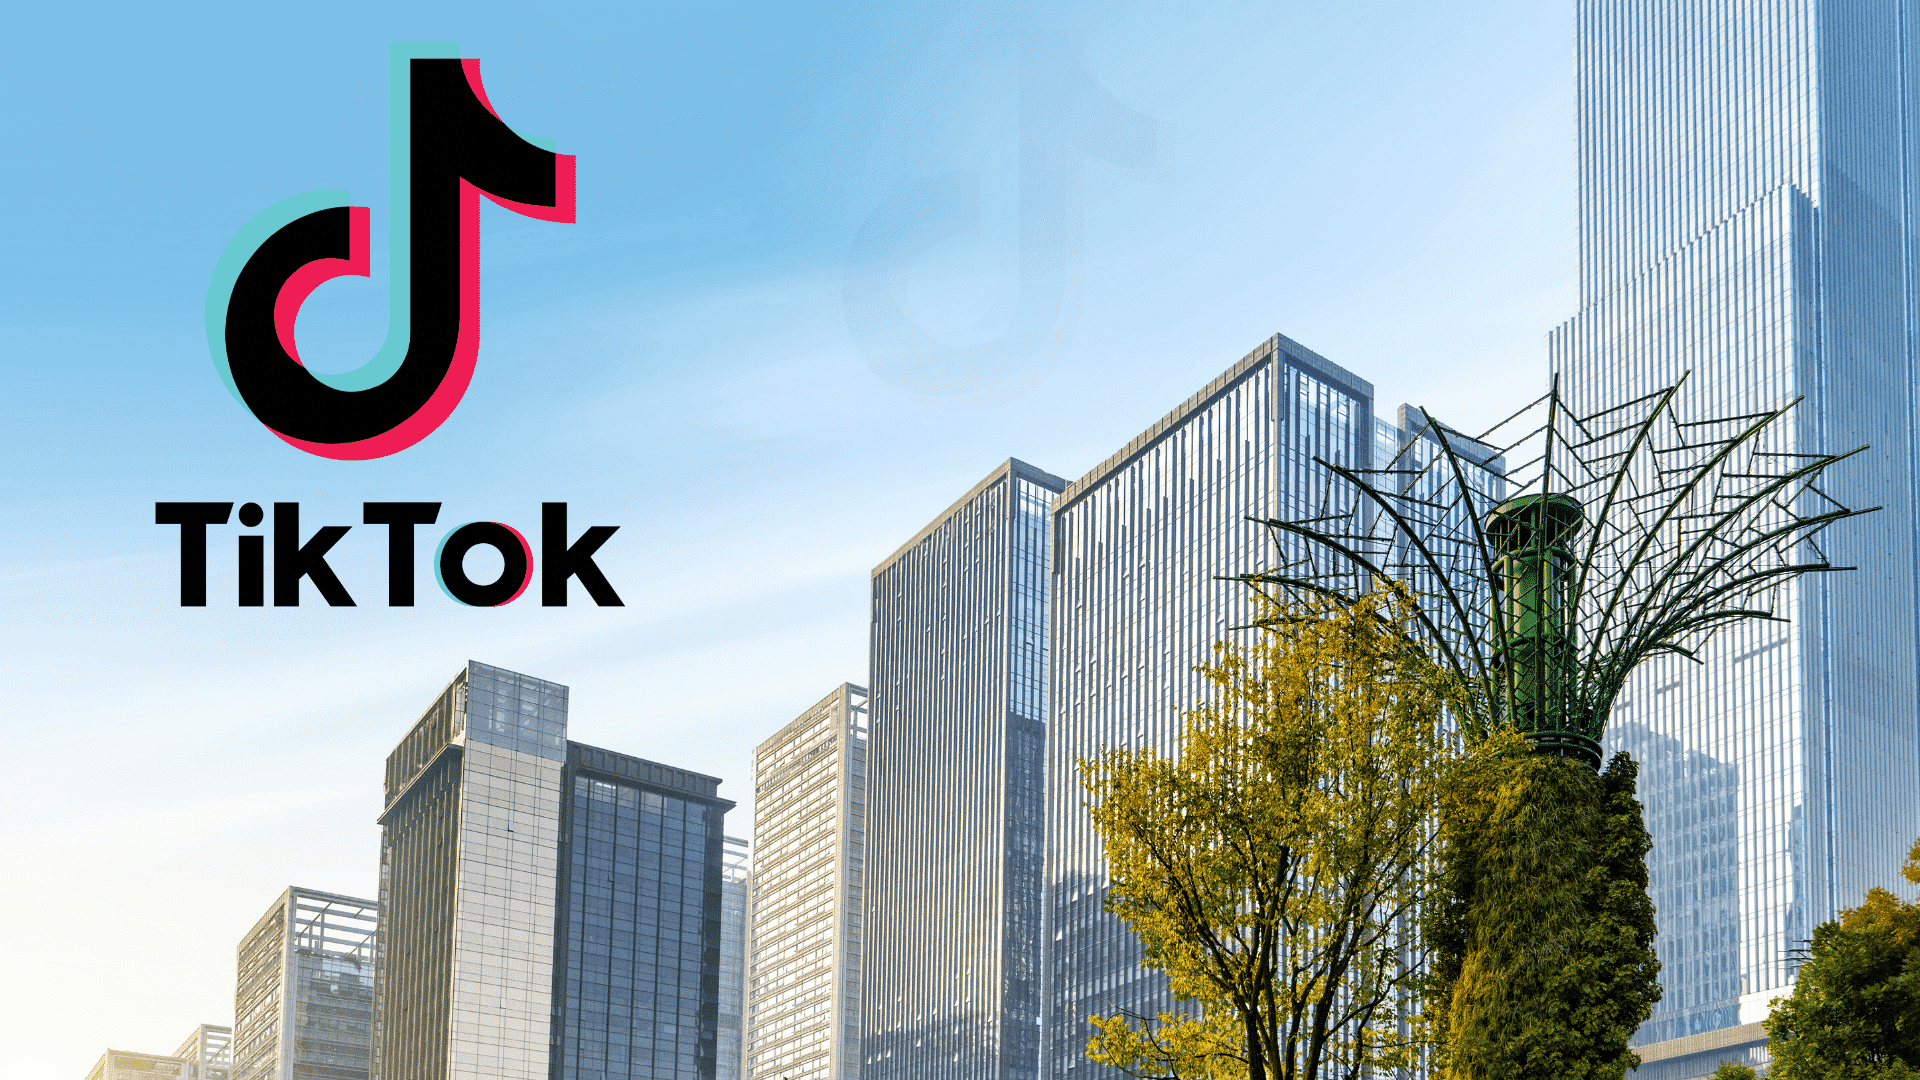 TikTok Planning to Move its Headquarters Out of China